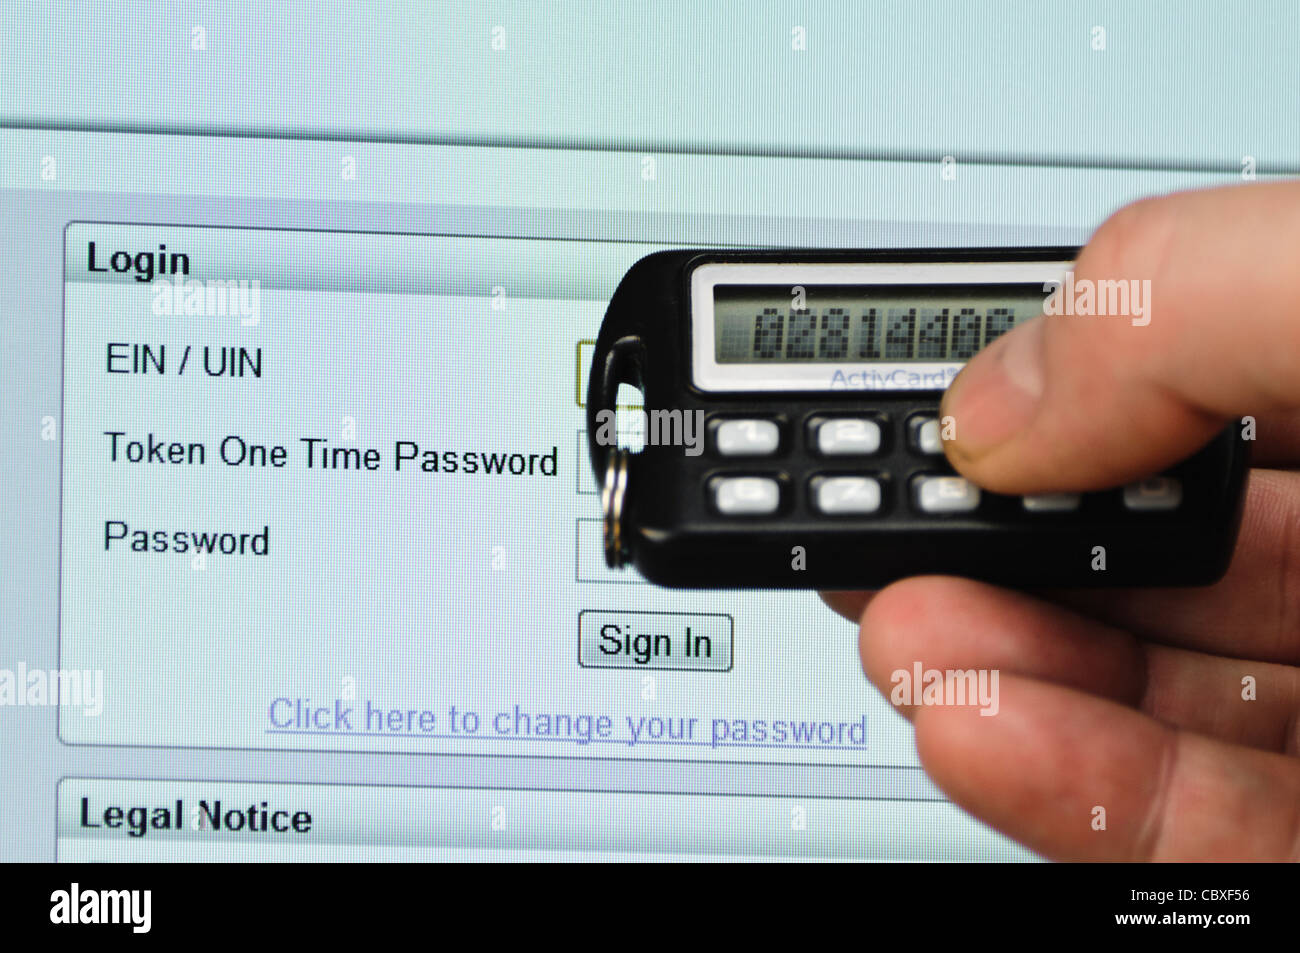 Man uses SecureID token to log into a website needing a userID, Passcode and Password - Stock Image